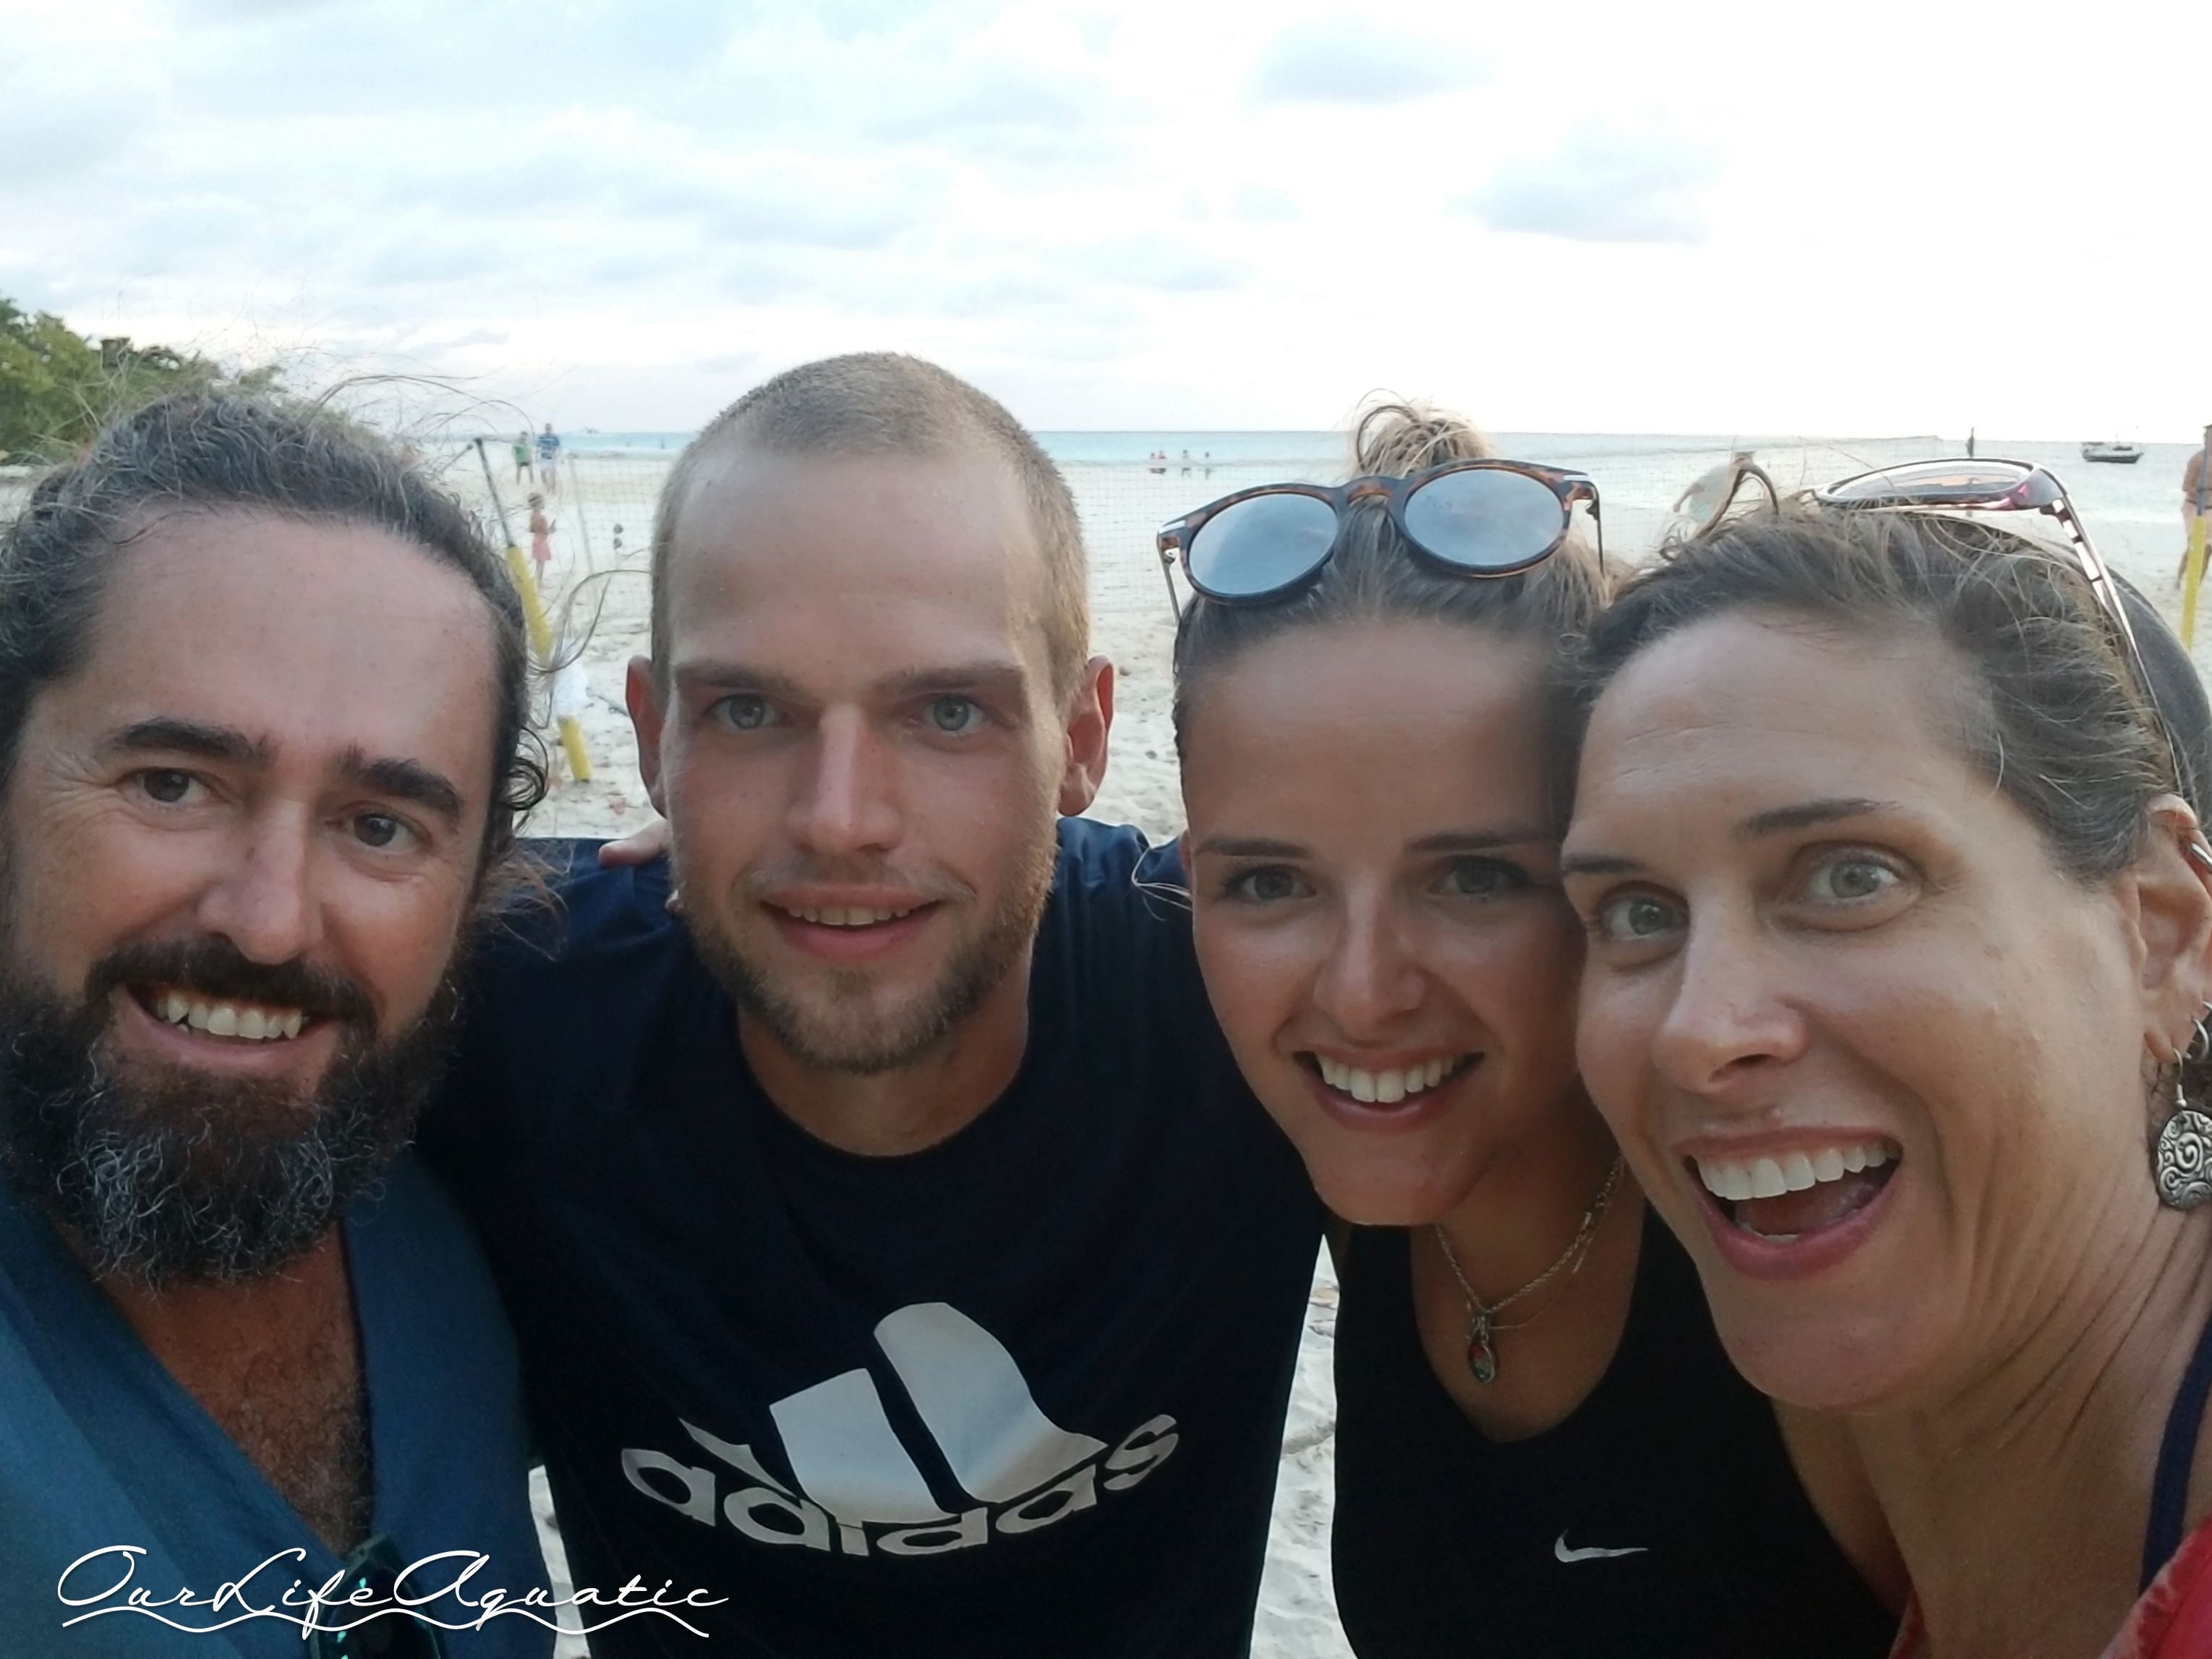 We had so much fun with Daan and Janneke